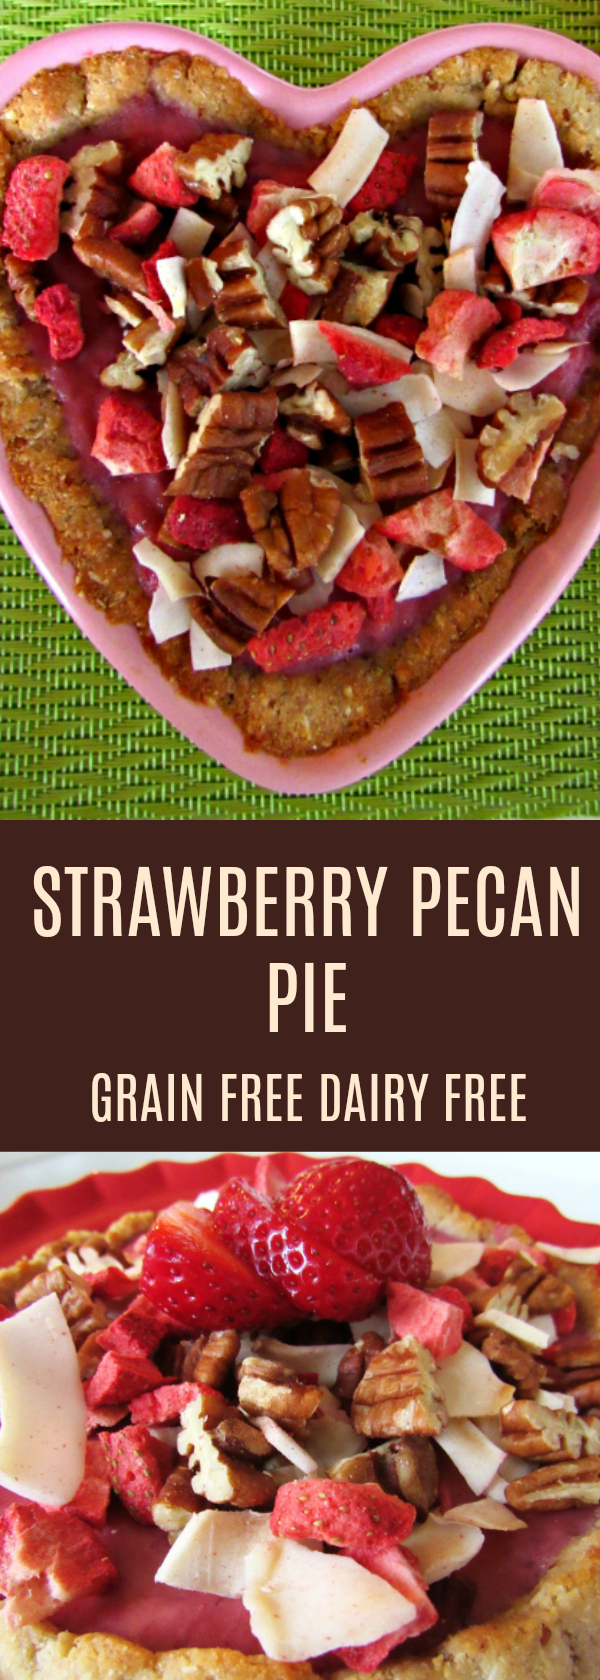 strawberry pecan pie - grain free, dairy free